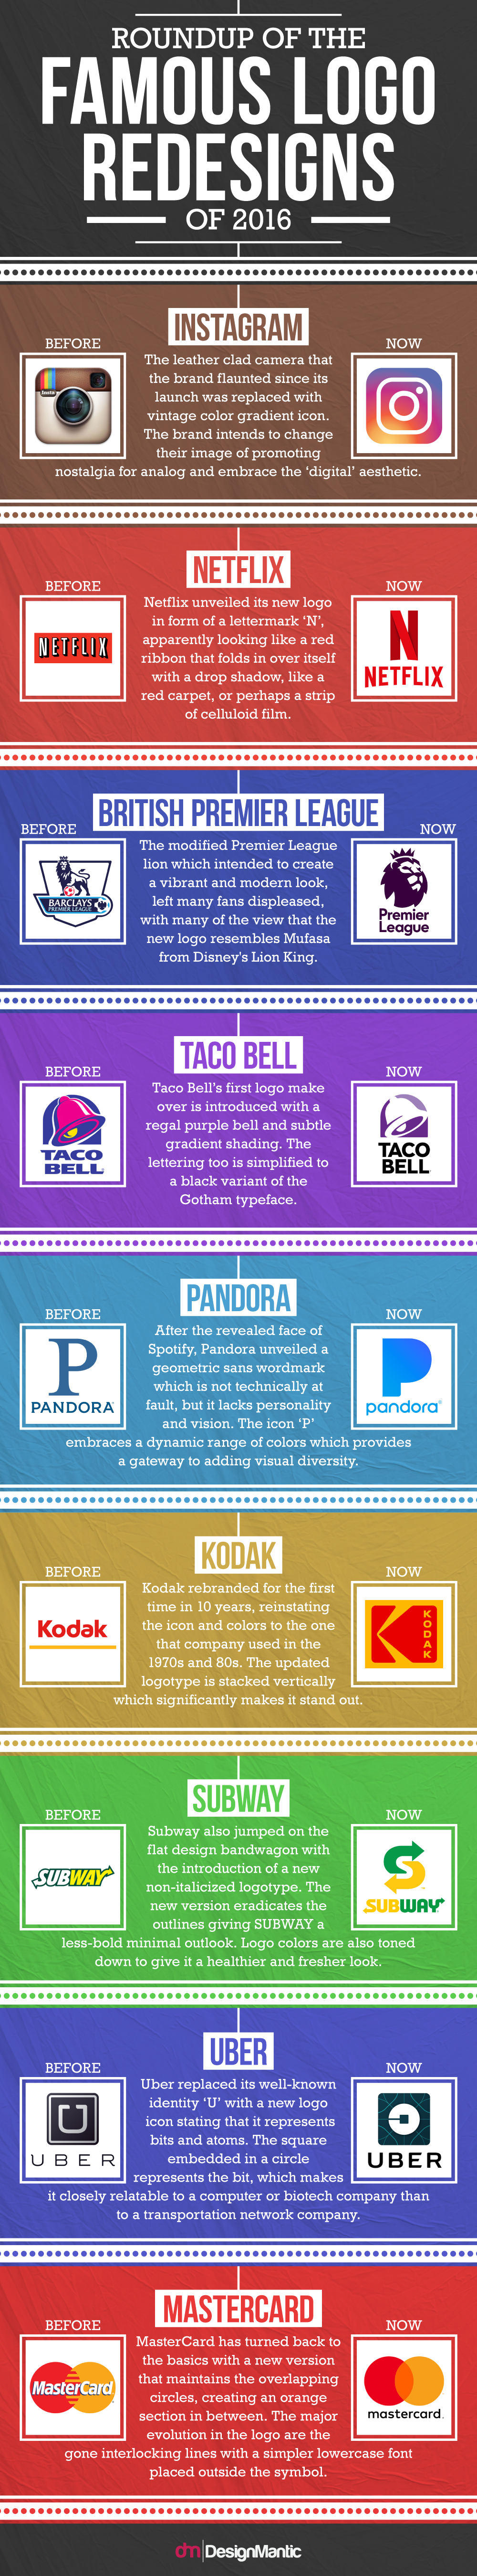 famous logo redesigns 2016